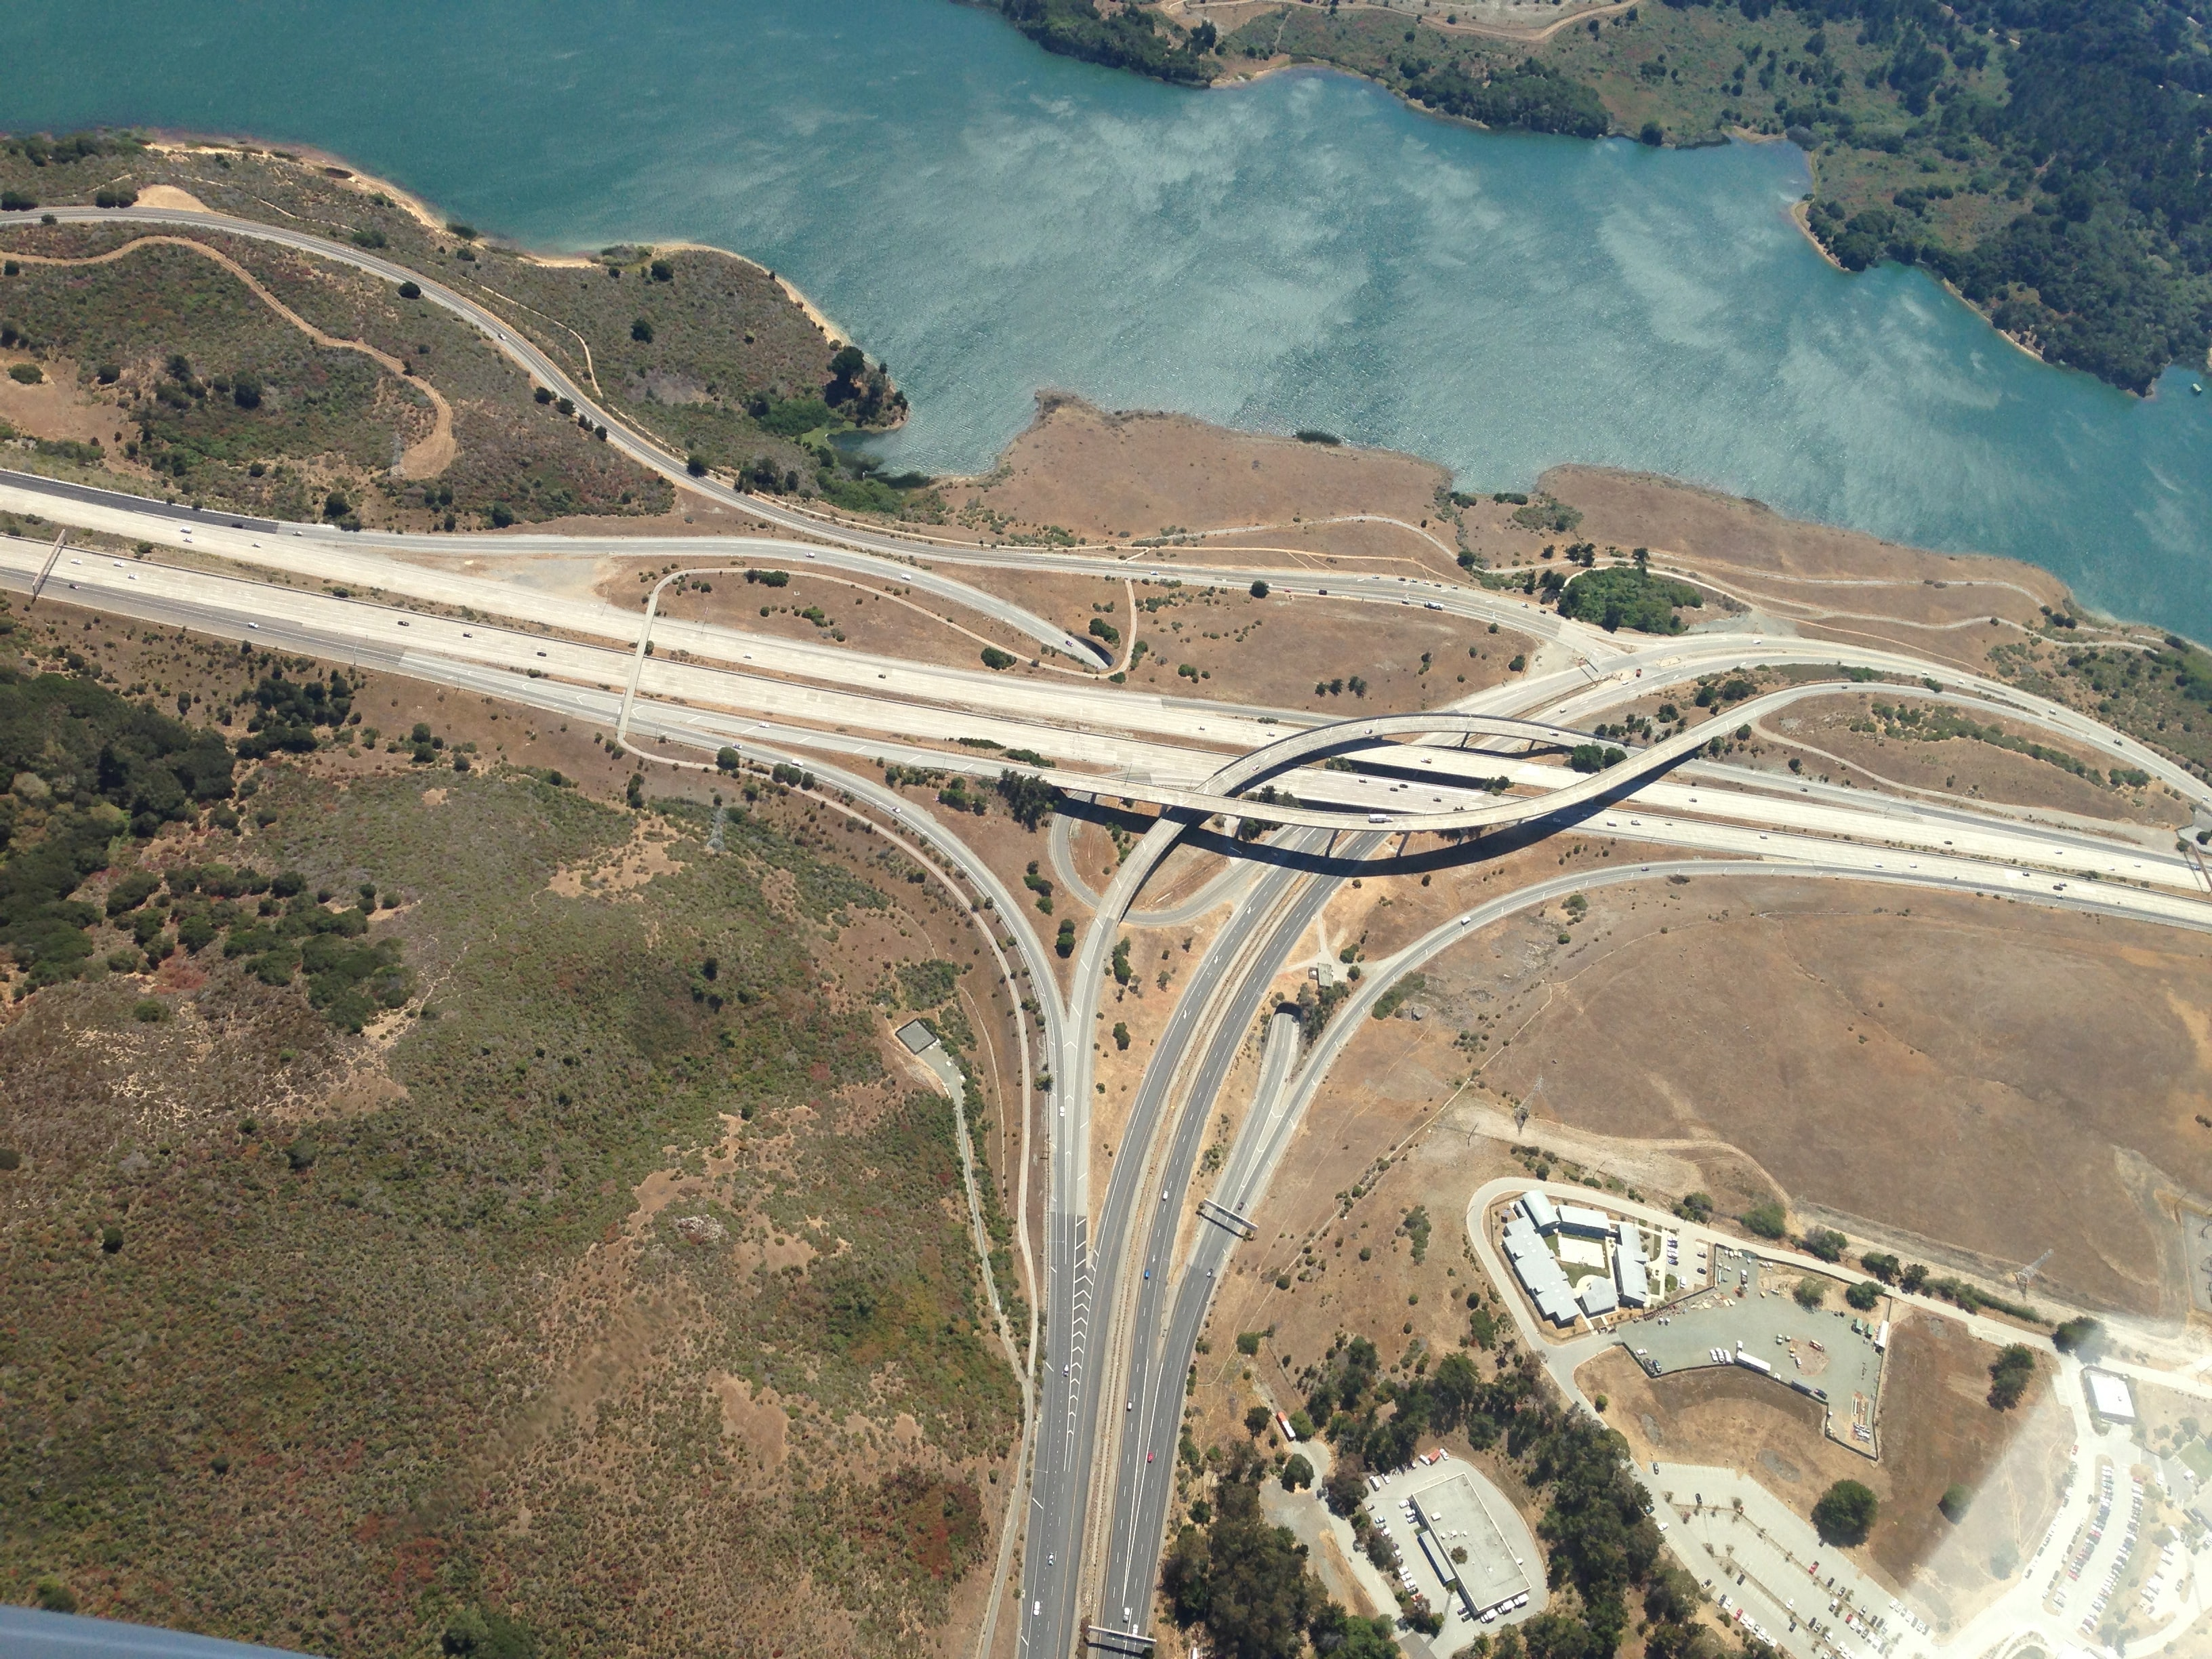 A drone shot of a road interchange near a river